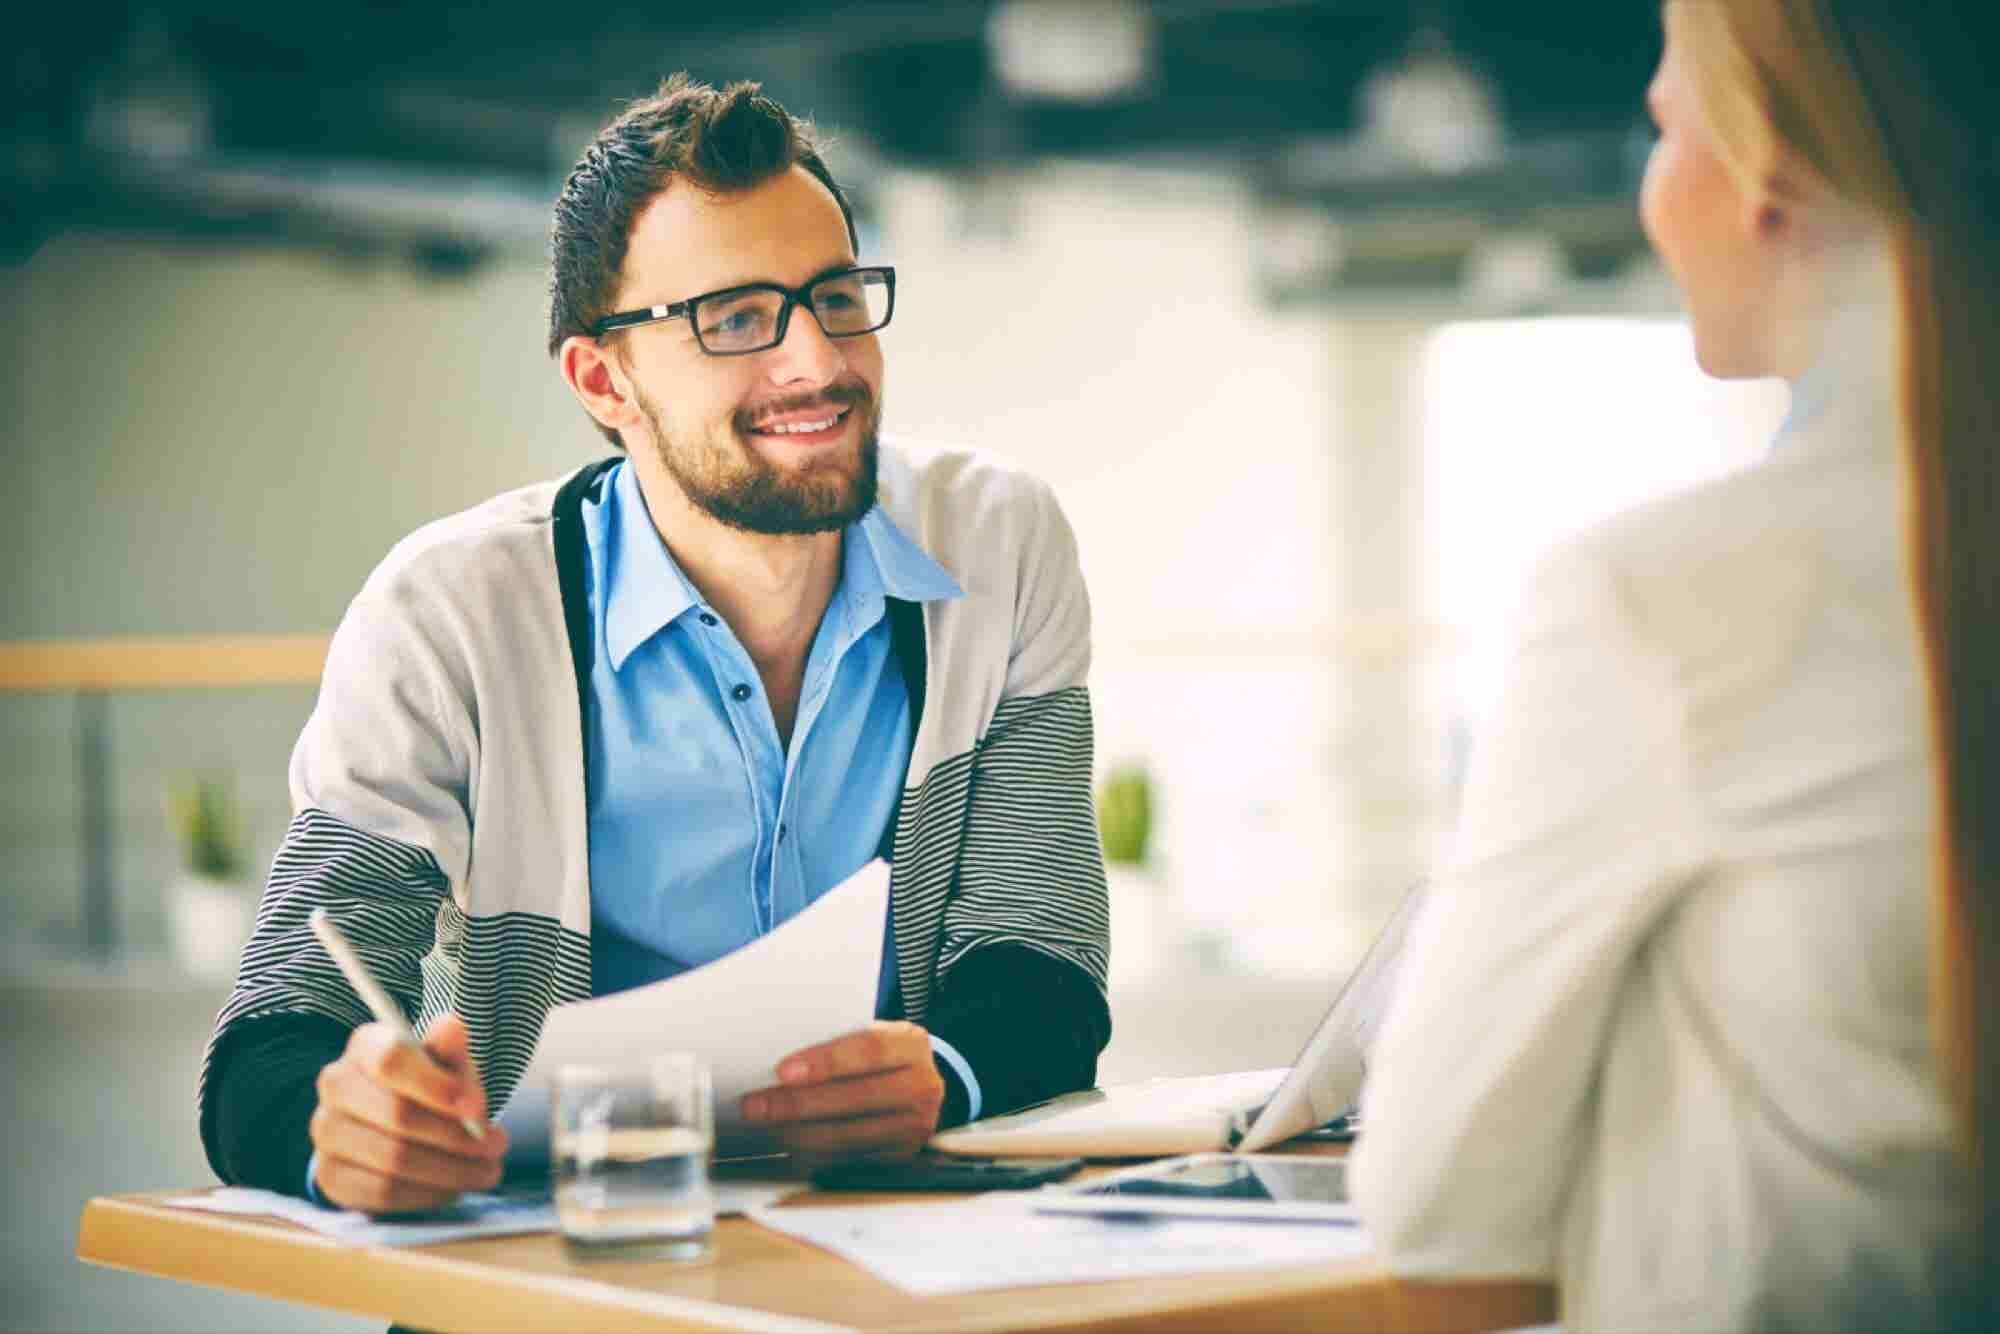 How to Be Authentic in an Interview